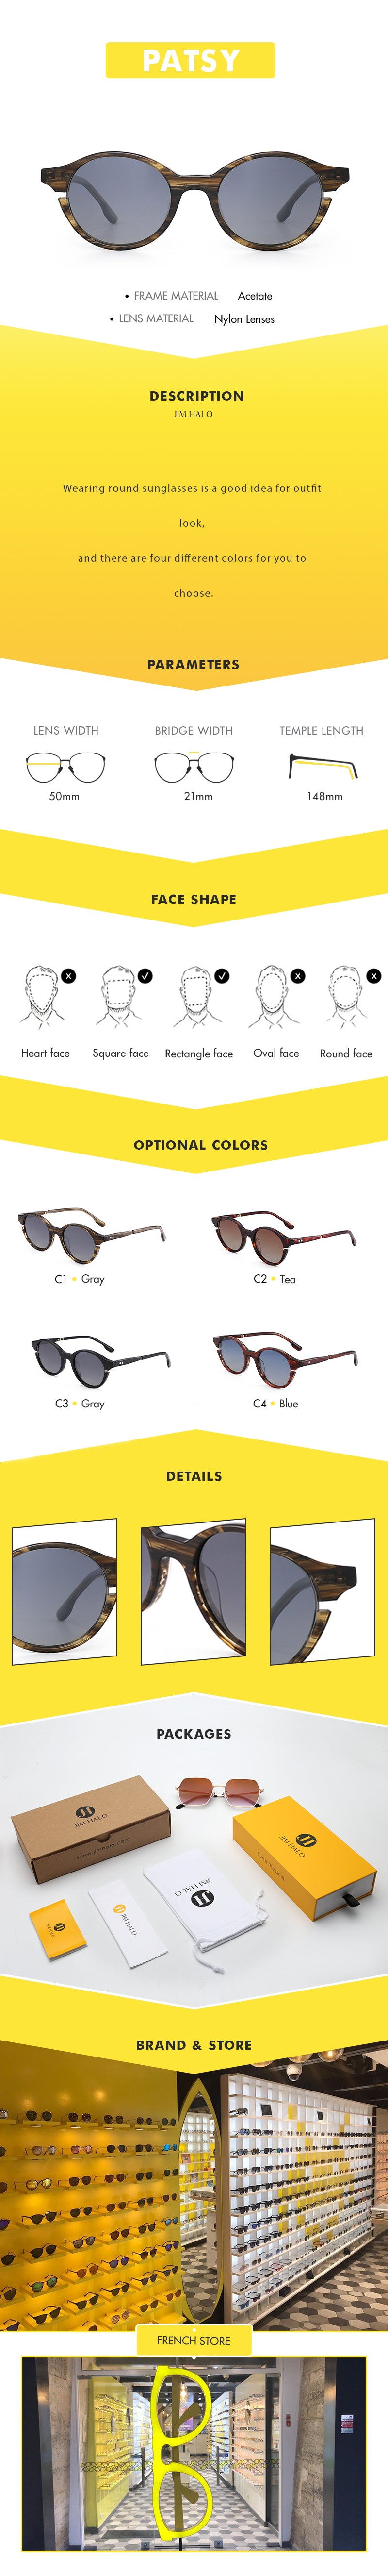 Wearing round sunglasses is a good idea for outfit look,  and there are four different colors for you to choose.